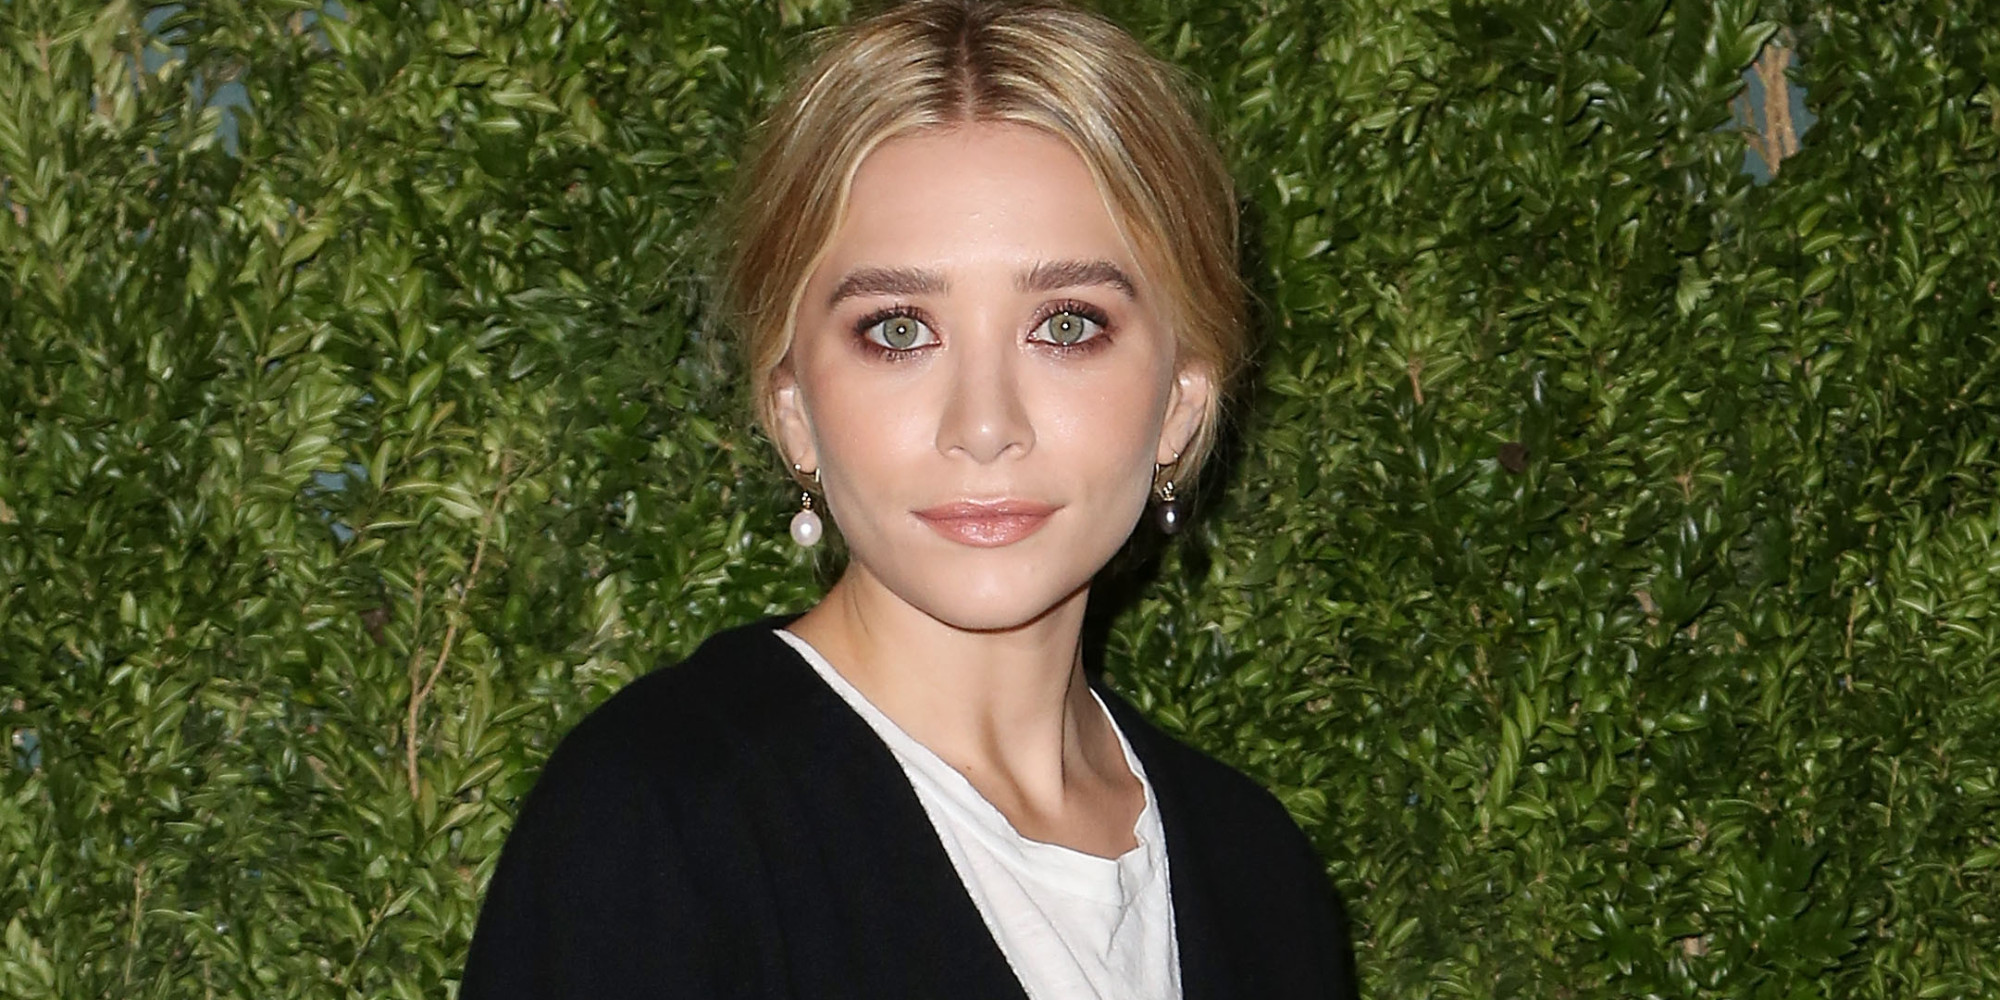 Watch Ashley Olsen born June 13, 1986 (age 32) video